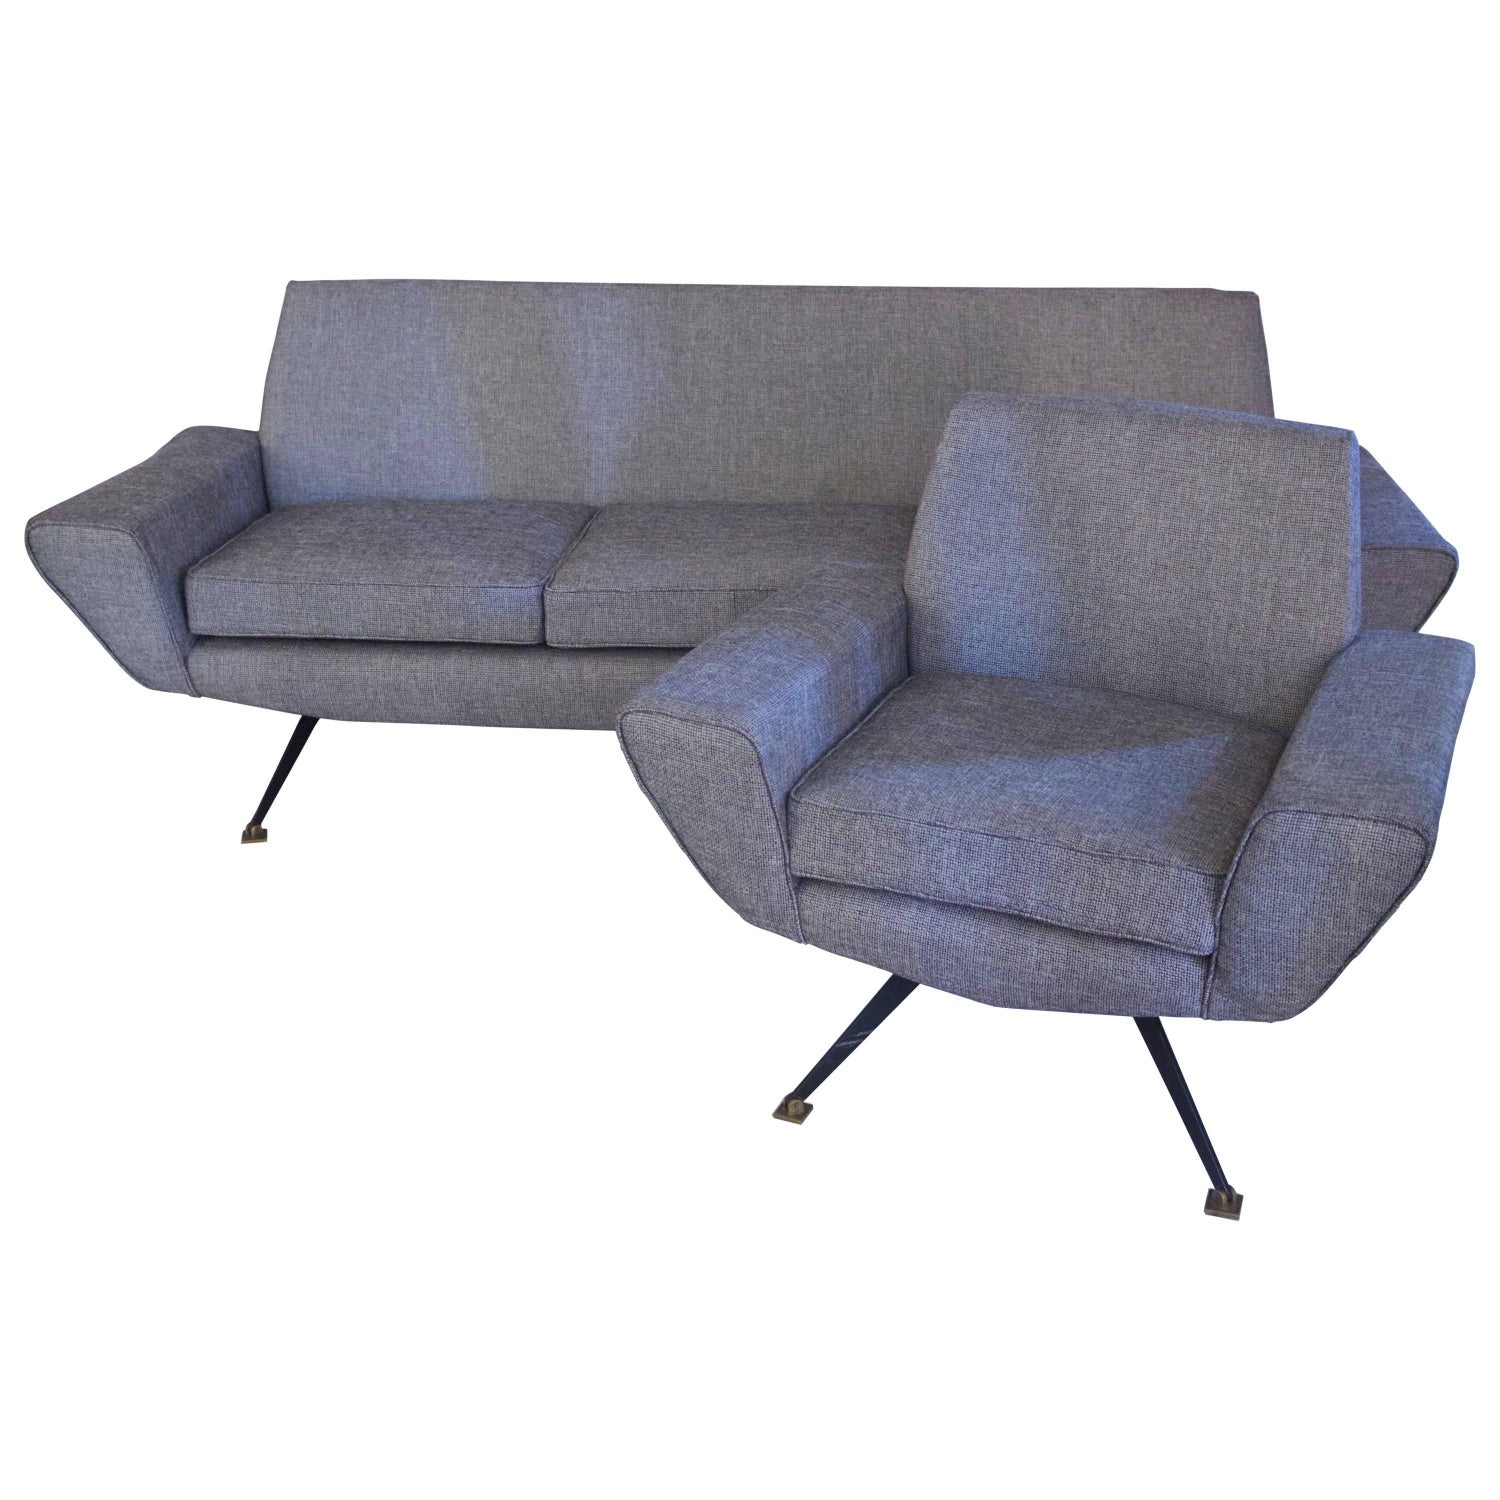 Minotti Living Room with a Sofa and Two Armchairs circa 1960